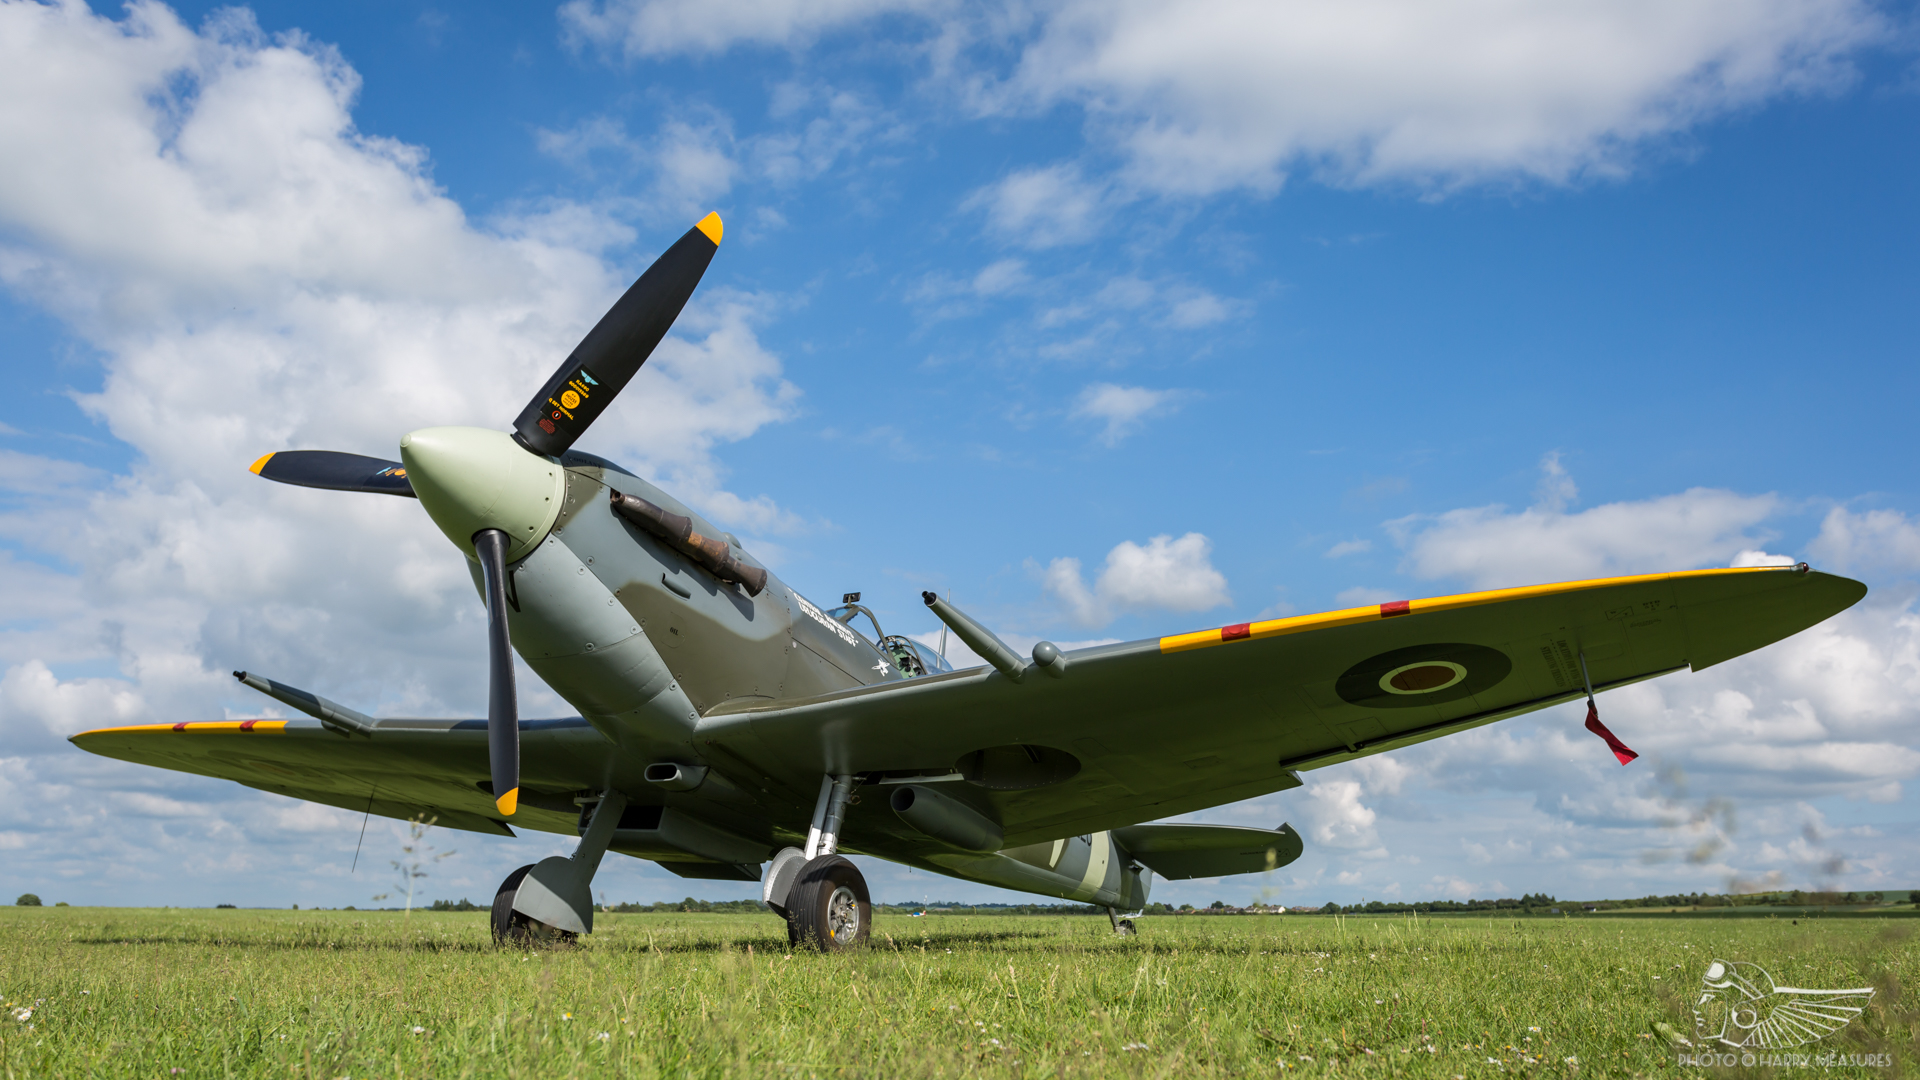 Previewing Flying Legends 2018 | The Vintage Aviation Echo